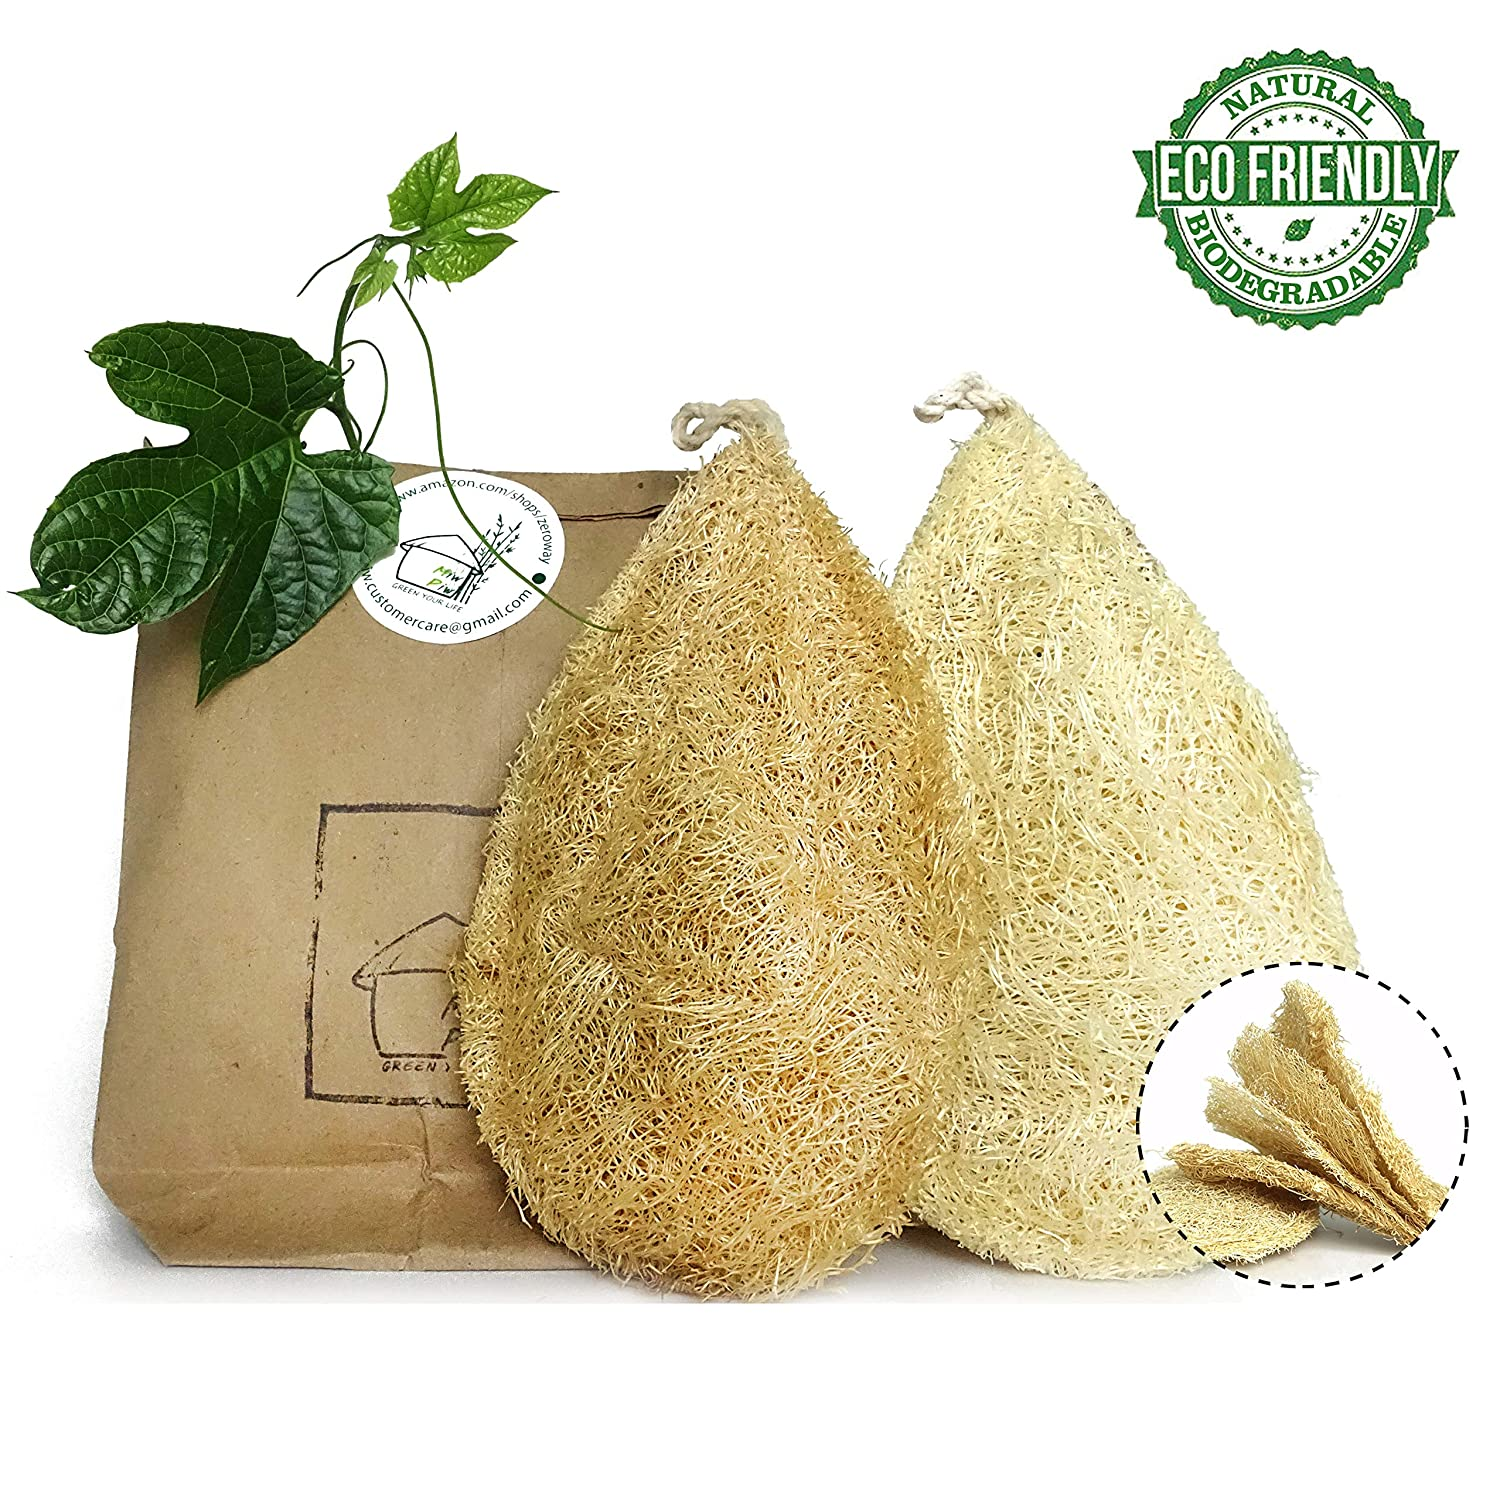 Natural Dish Scrubber | Pack 2 Vegetable Sponge for Kitchen |100% Loofah Plant | Cellulose Scouring Pad | Biodegradable Compostable Dishwashing | Zero Waste Product | Luffa Loofa Loufa Lufa